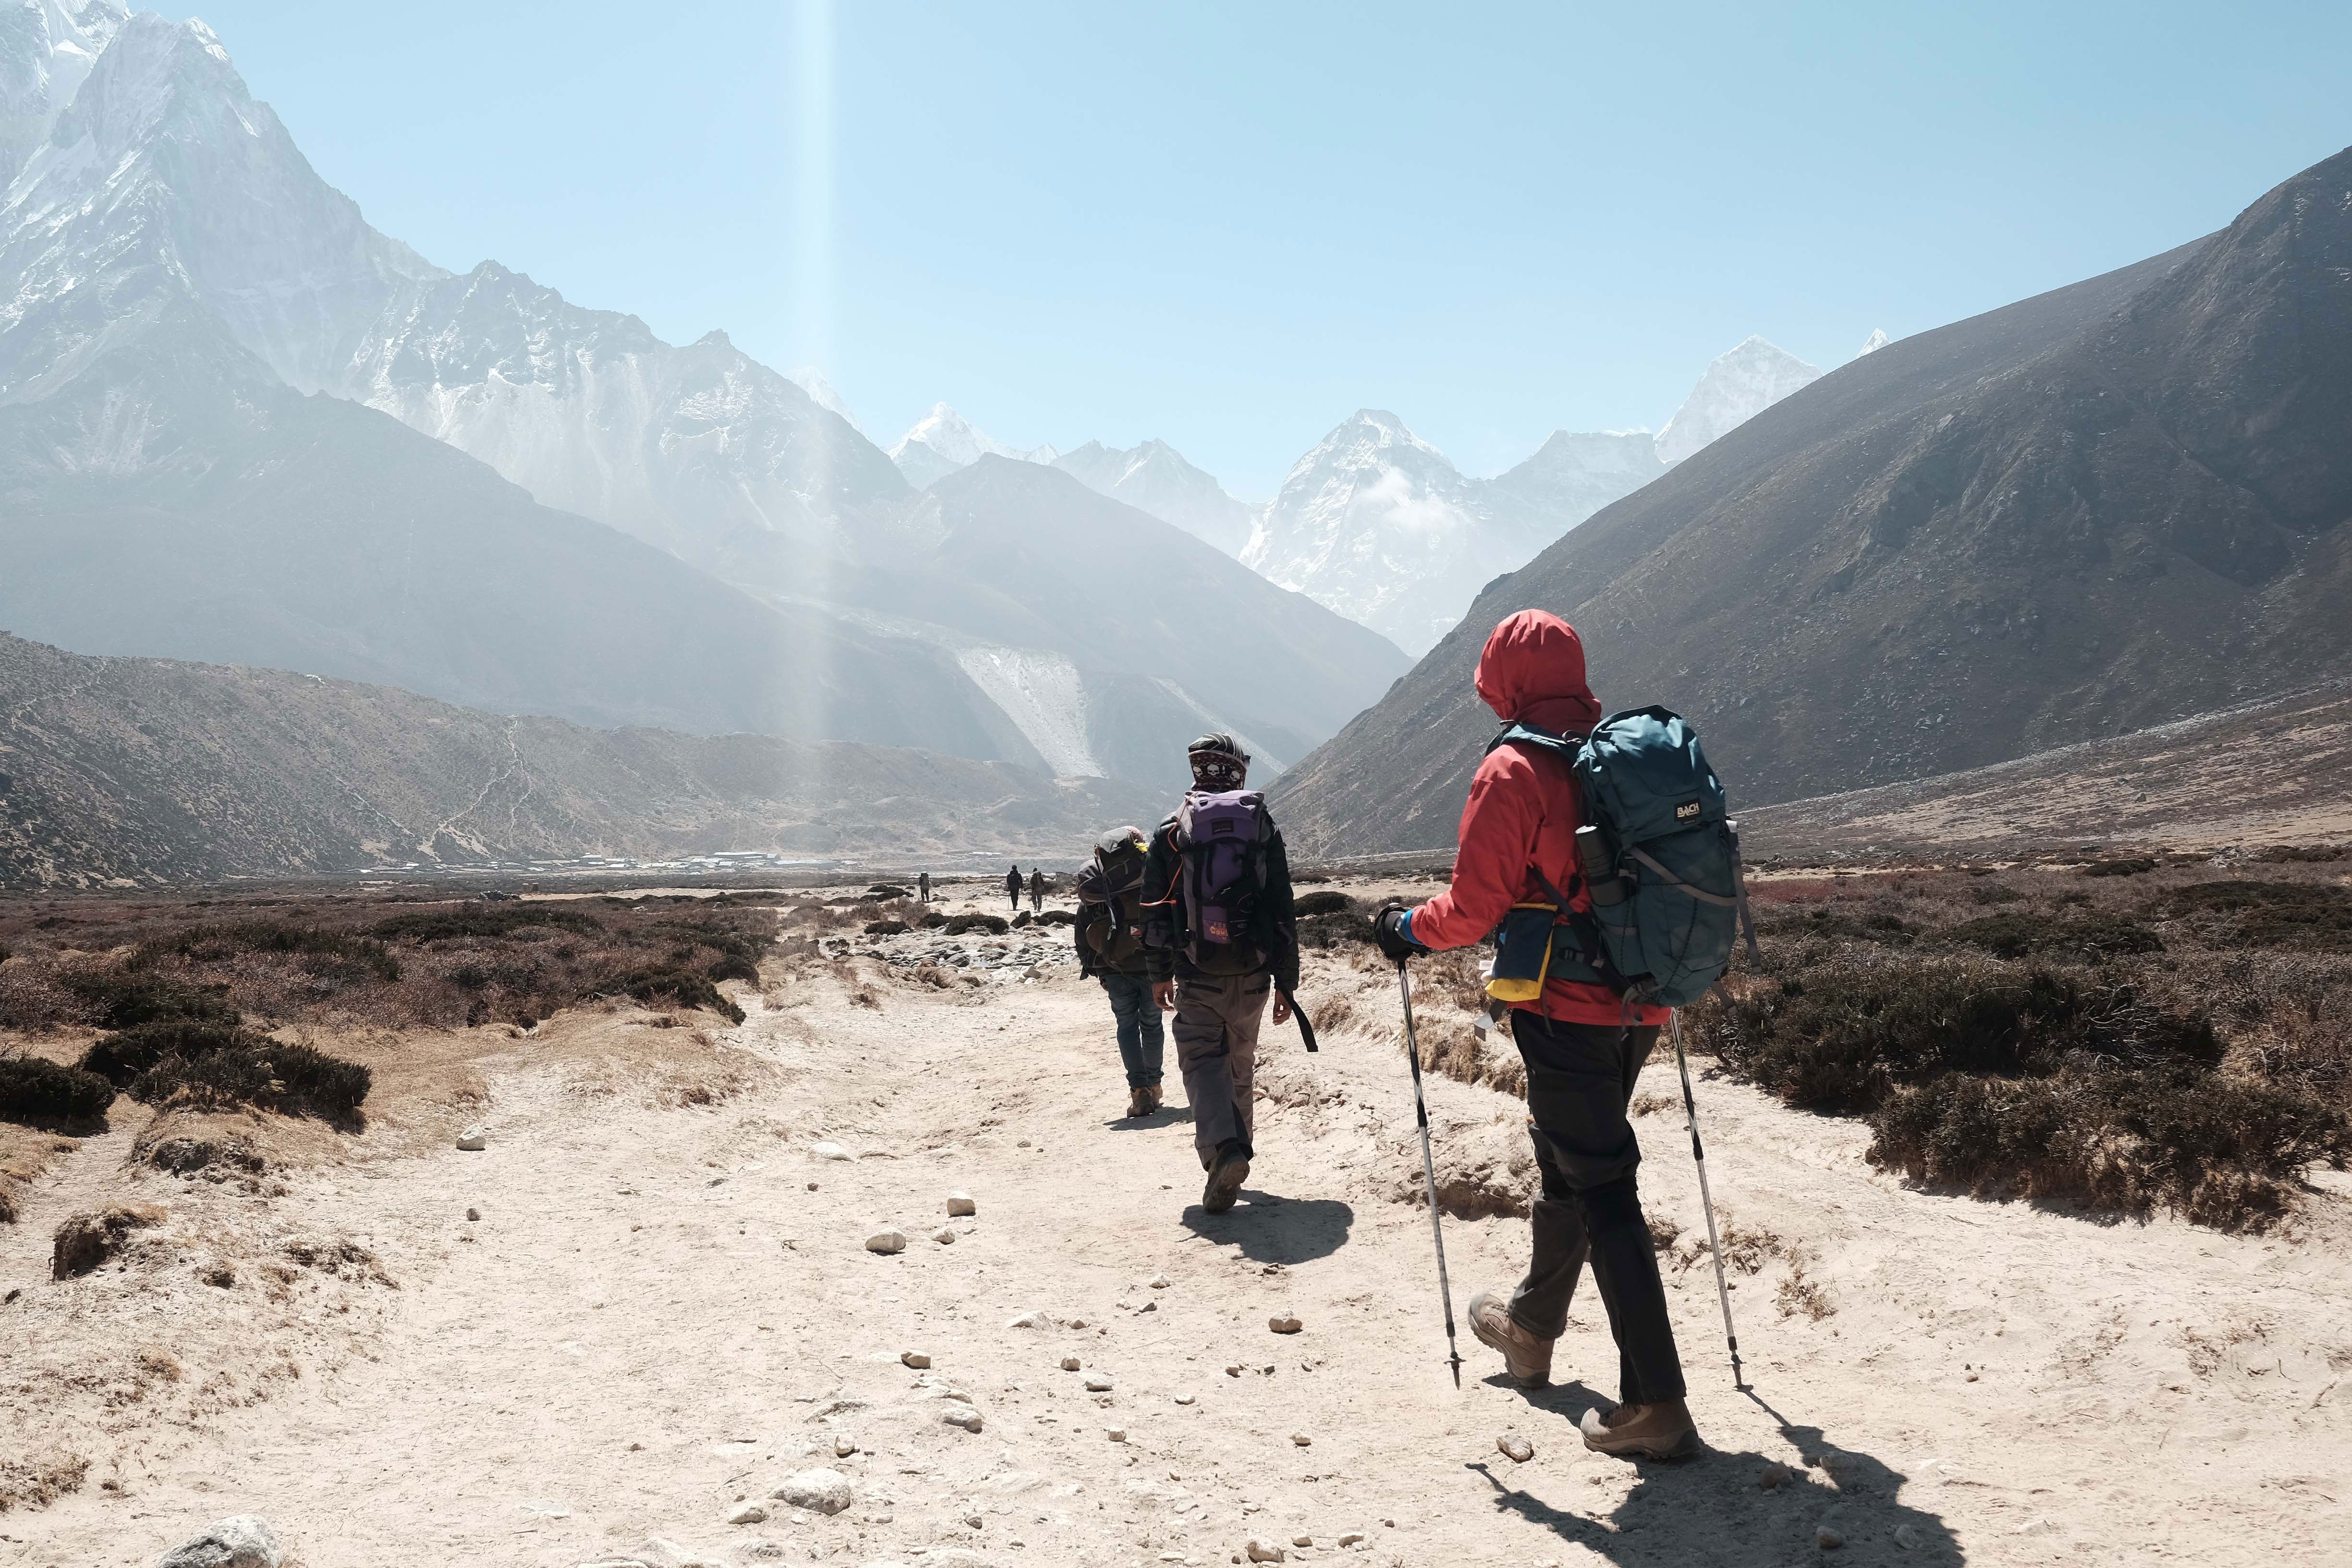 China closes Everest base camp for litter clean-up